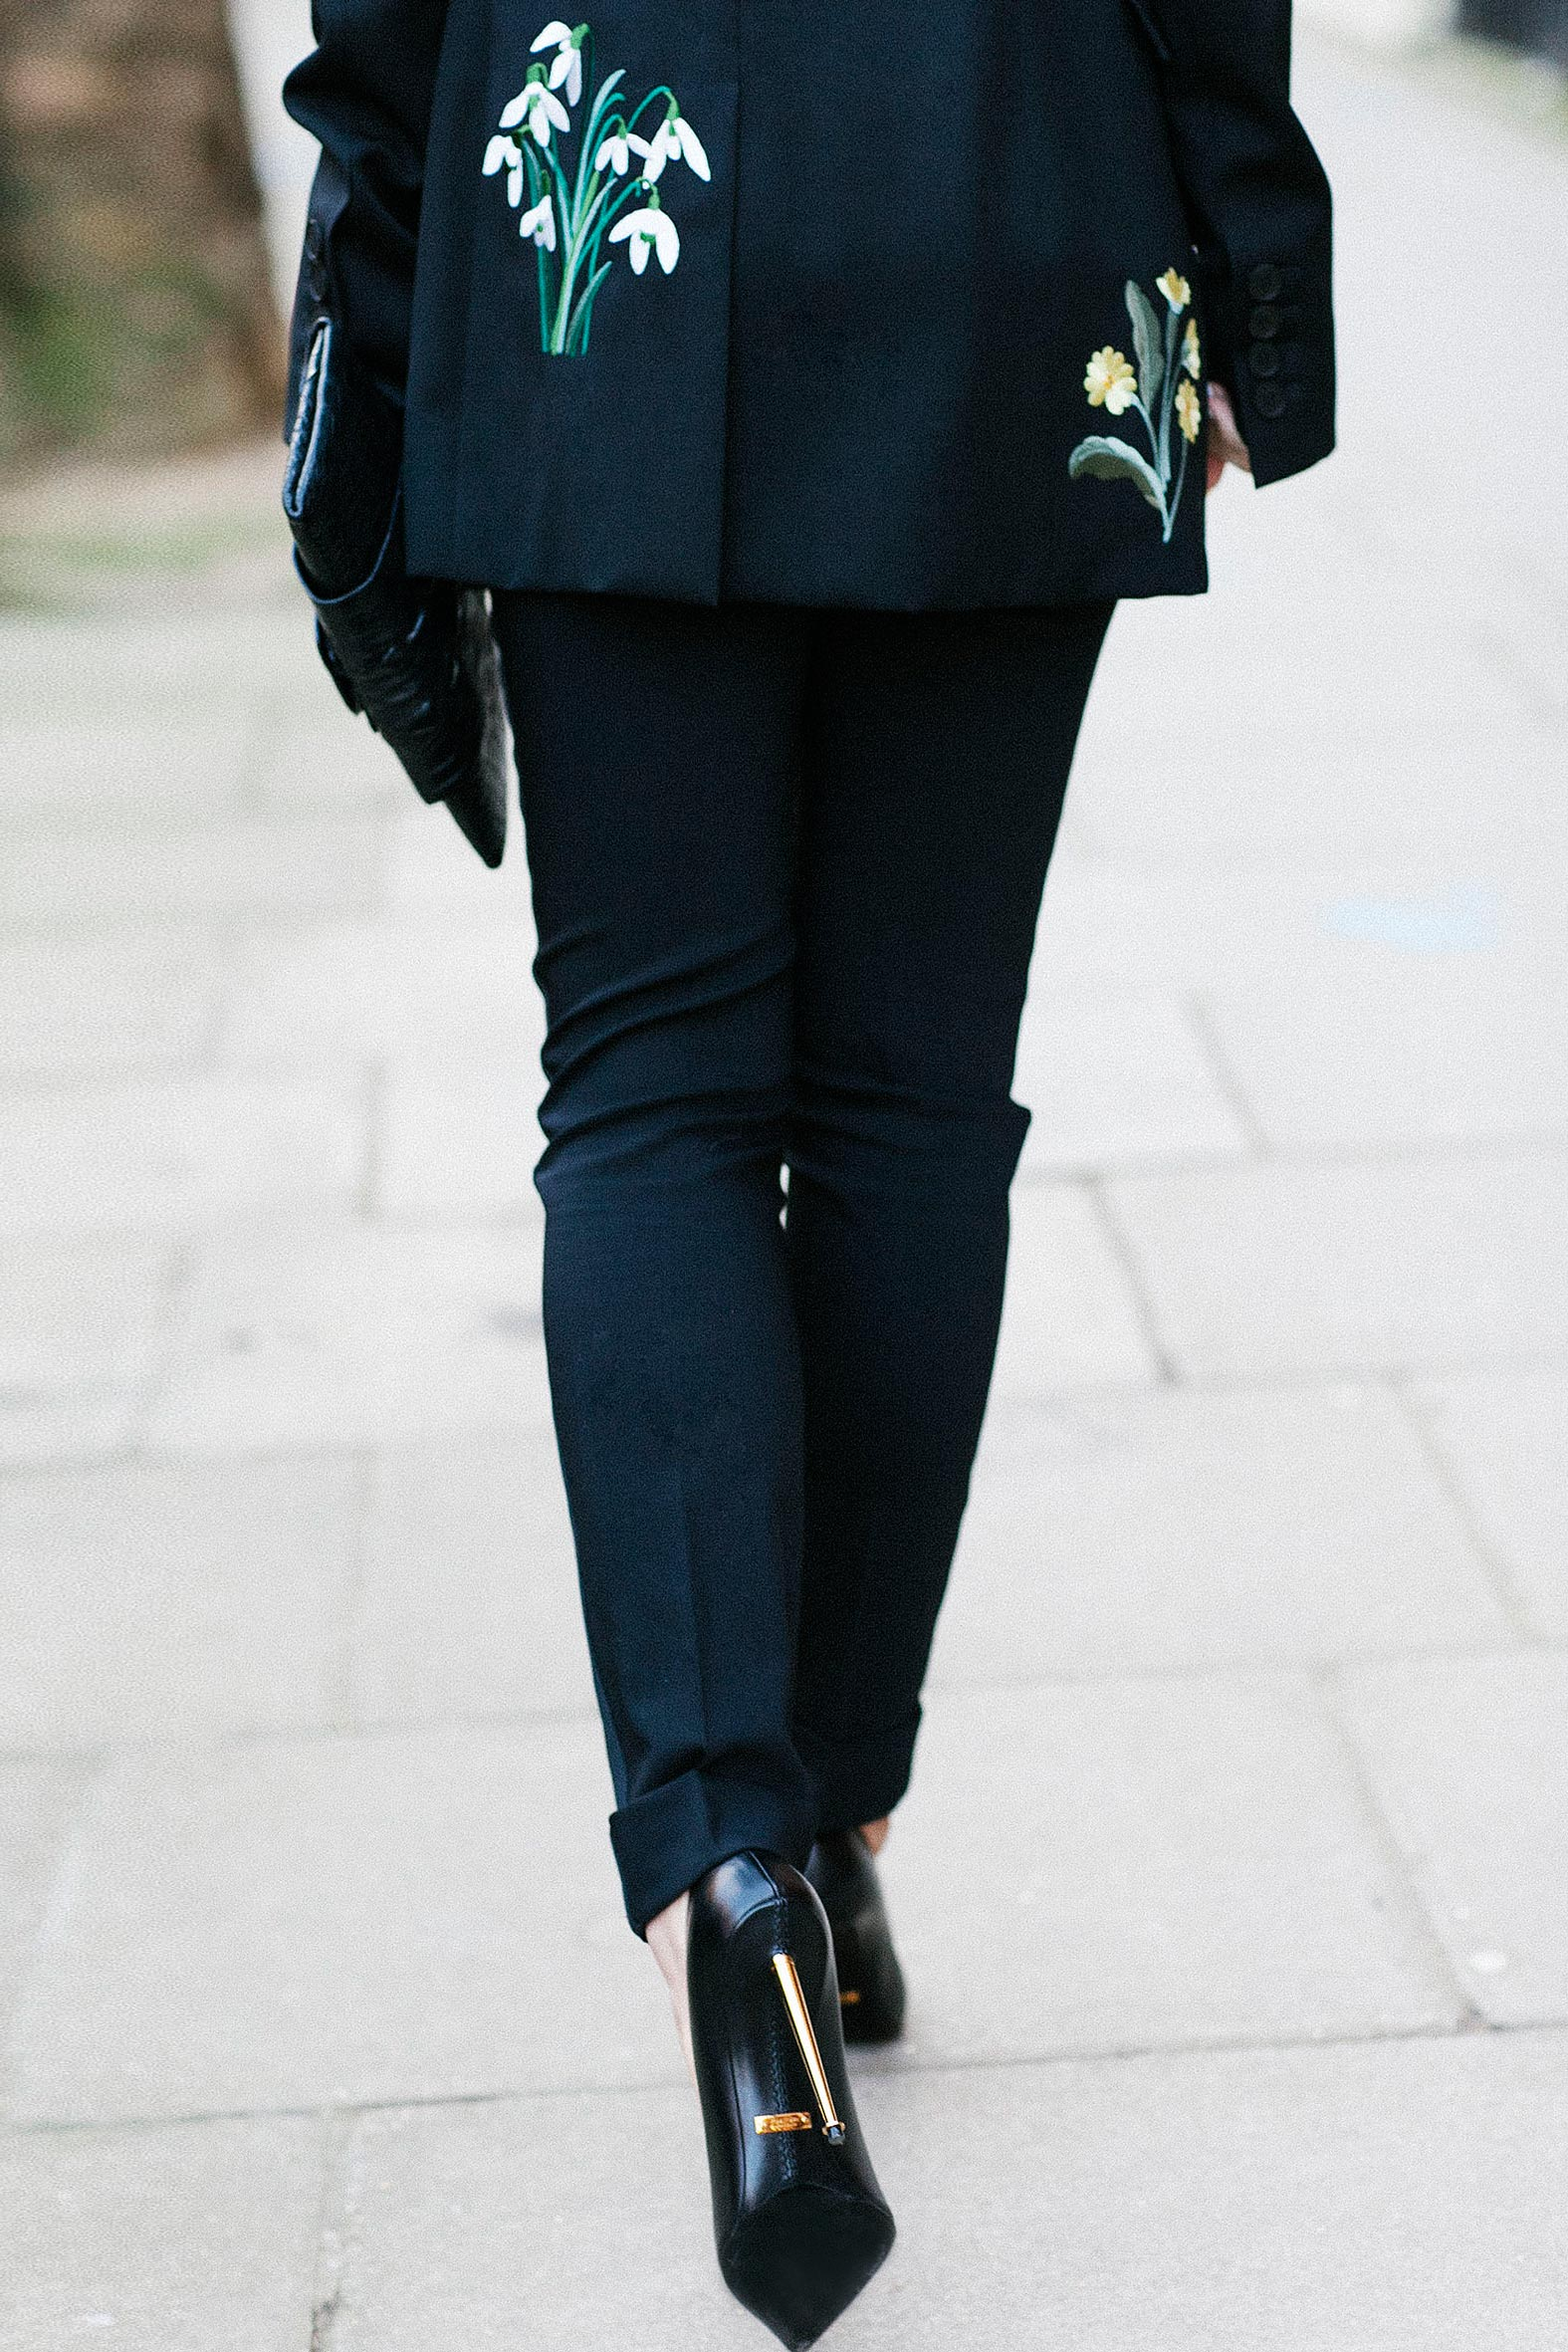 Tuxedo. 7 More Minutes. London fashion blog by Alyona Prykhodko. Daily fashion. London. Spring. Alyona is wearing Stella McCartney jacket, trousers by D&G, heels by Tom Ford, all jewellery by Sybarite. www.7moreminutes.com